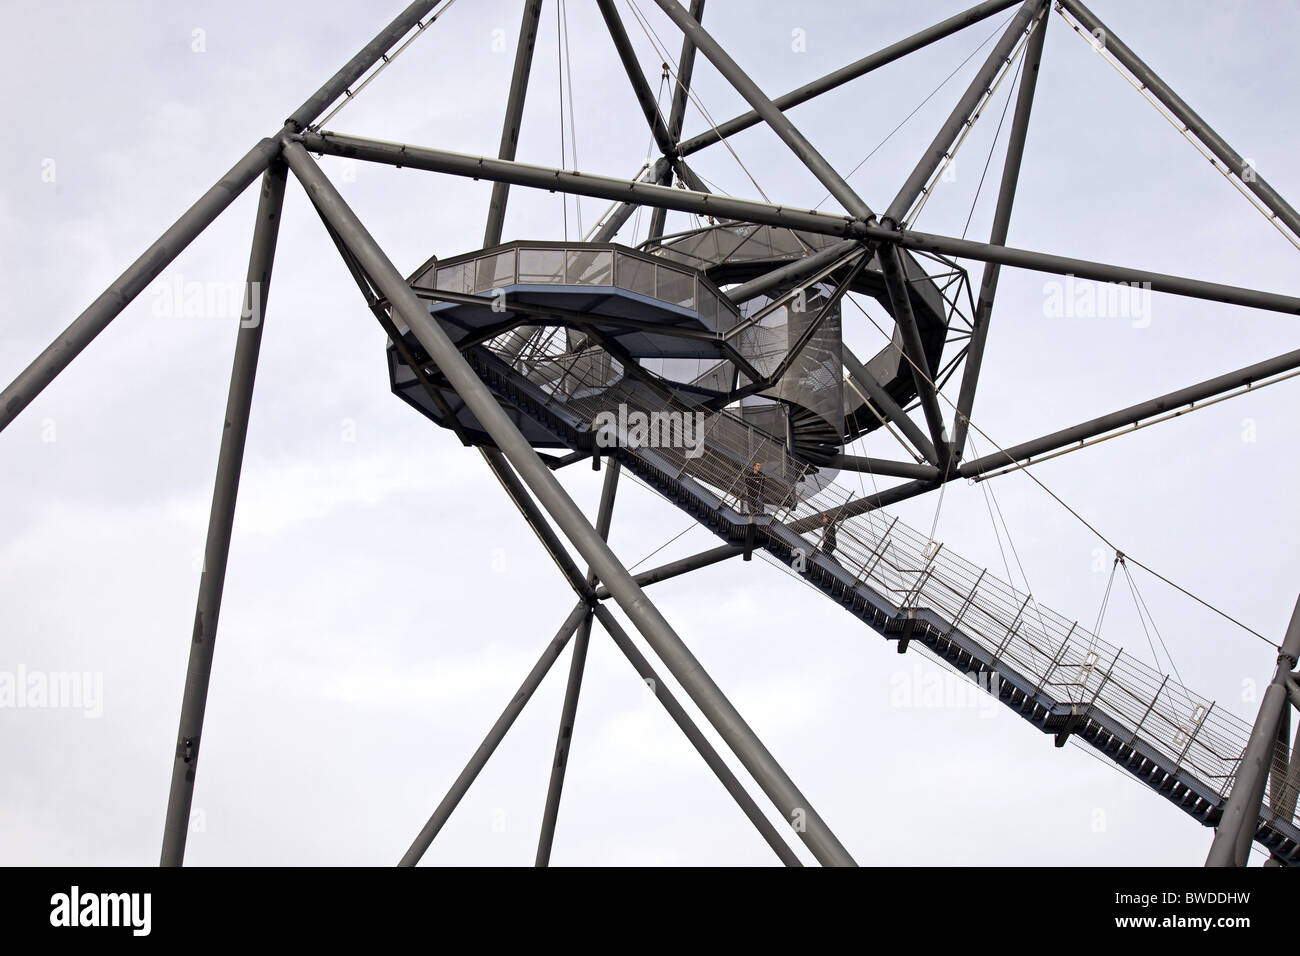 Tetraeder in Bottrop, Ruhr Area, Germany - Stock Image